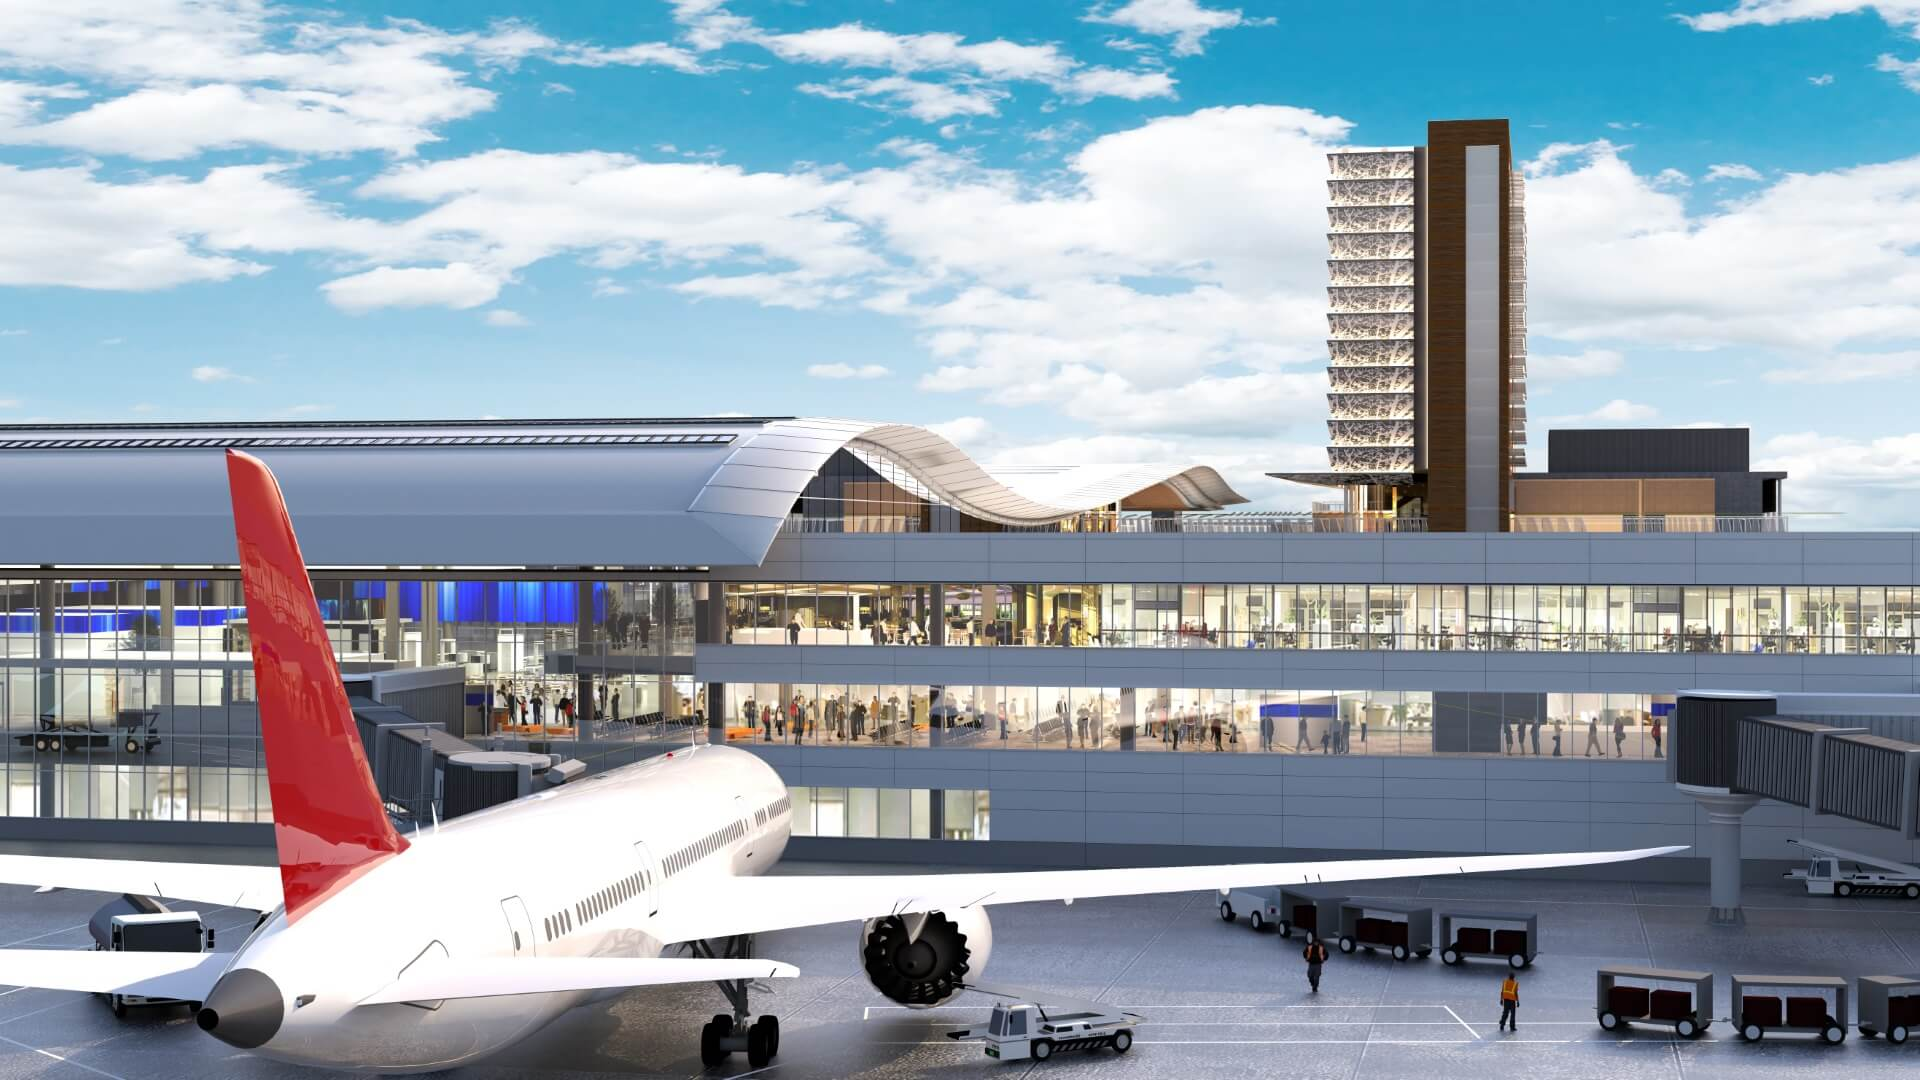 BNA Vision mockup view of airport and plane